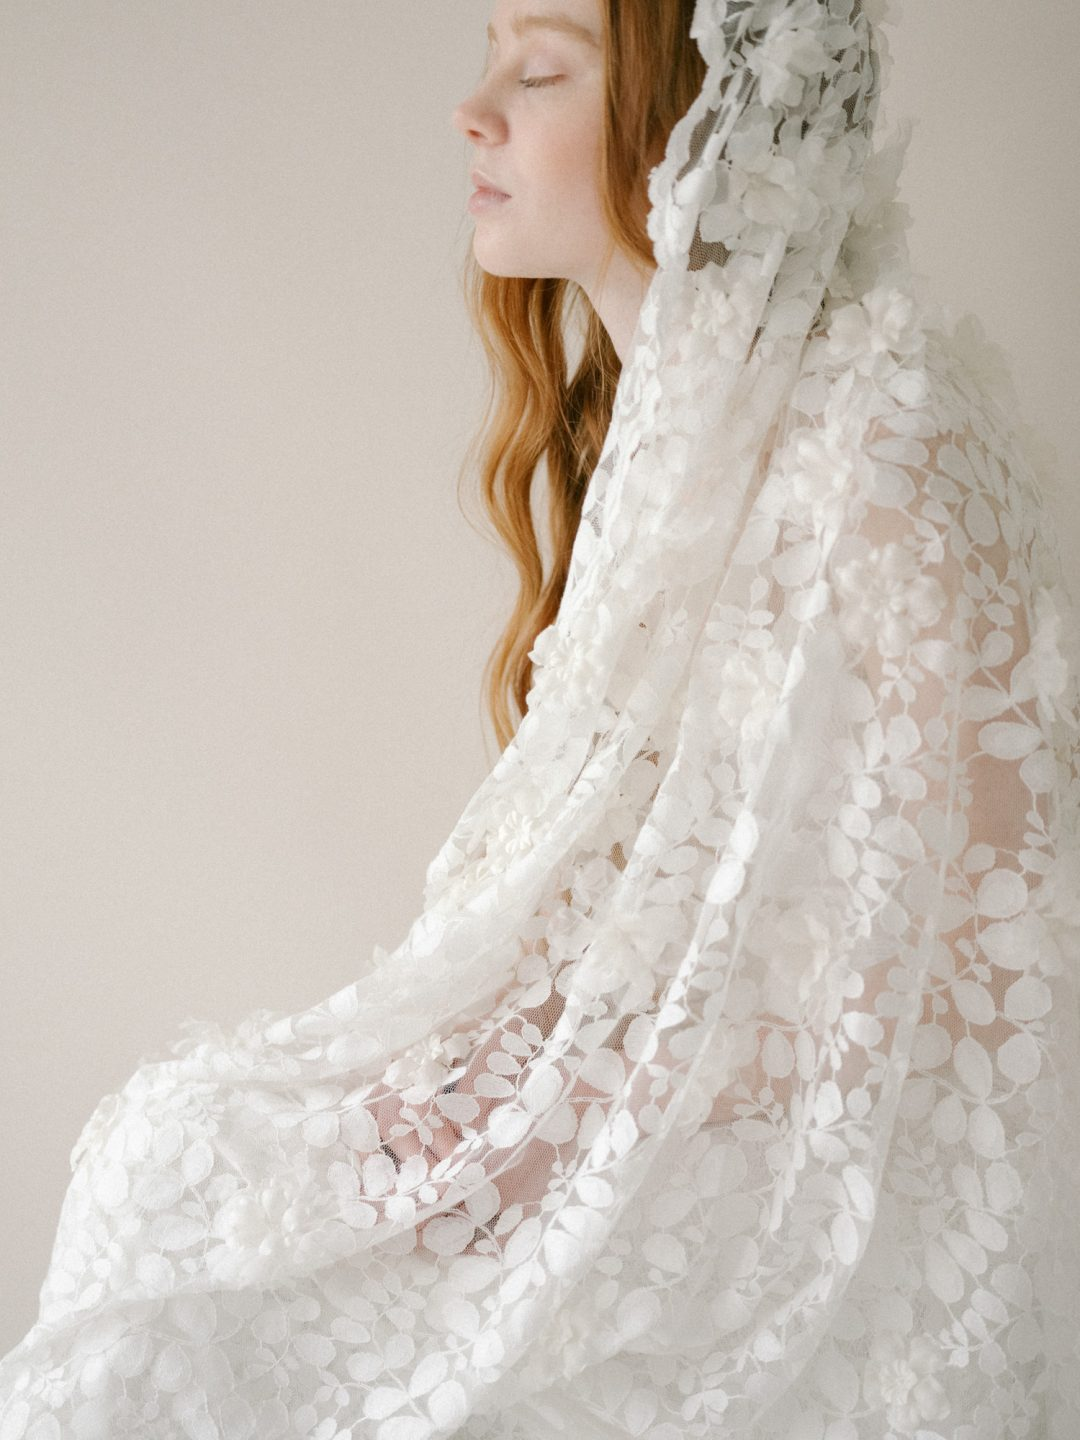 Style 805 - LACE MANTILLA BRIDAL VEIL by SIBO Designs Couture www.sibodesigns.com